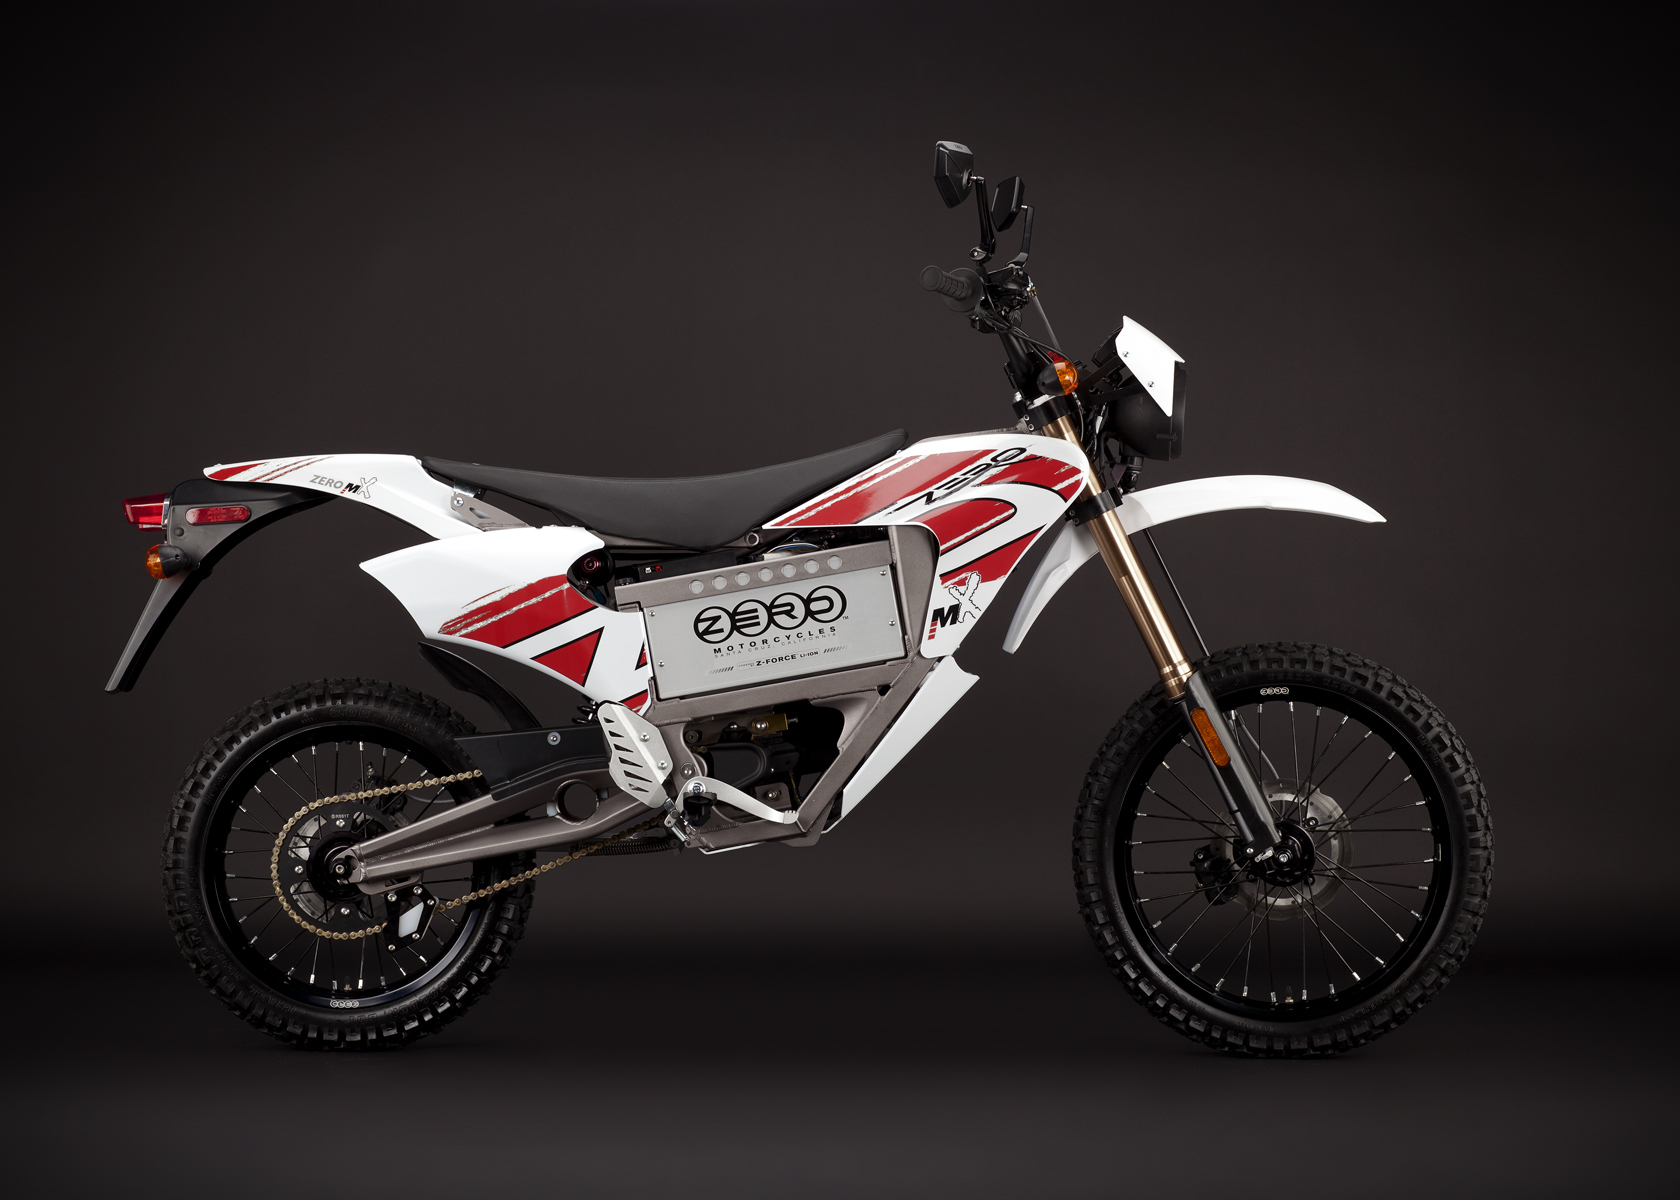 2011 Zero MX Electric Motorcycle: Right Profile, Street Legal Model